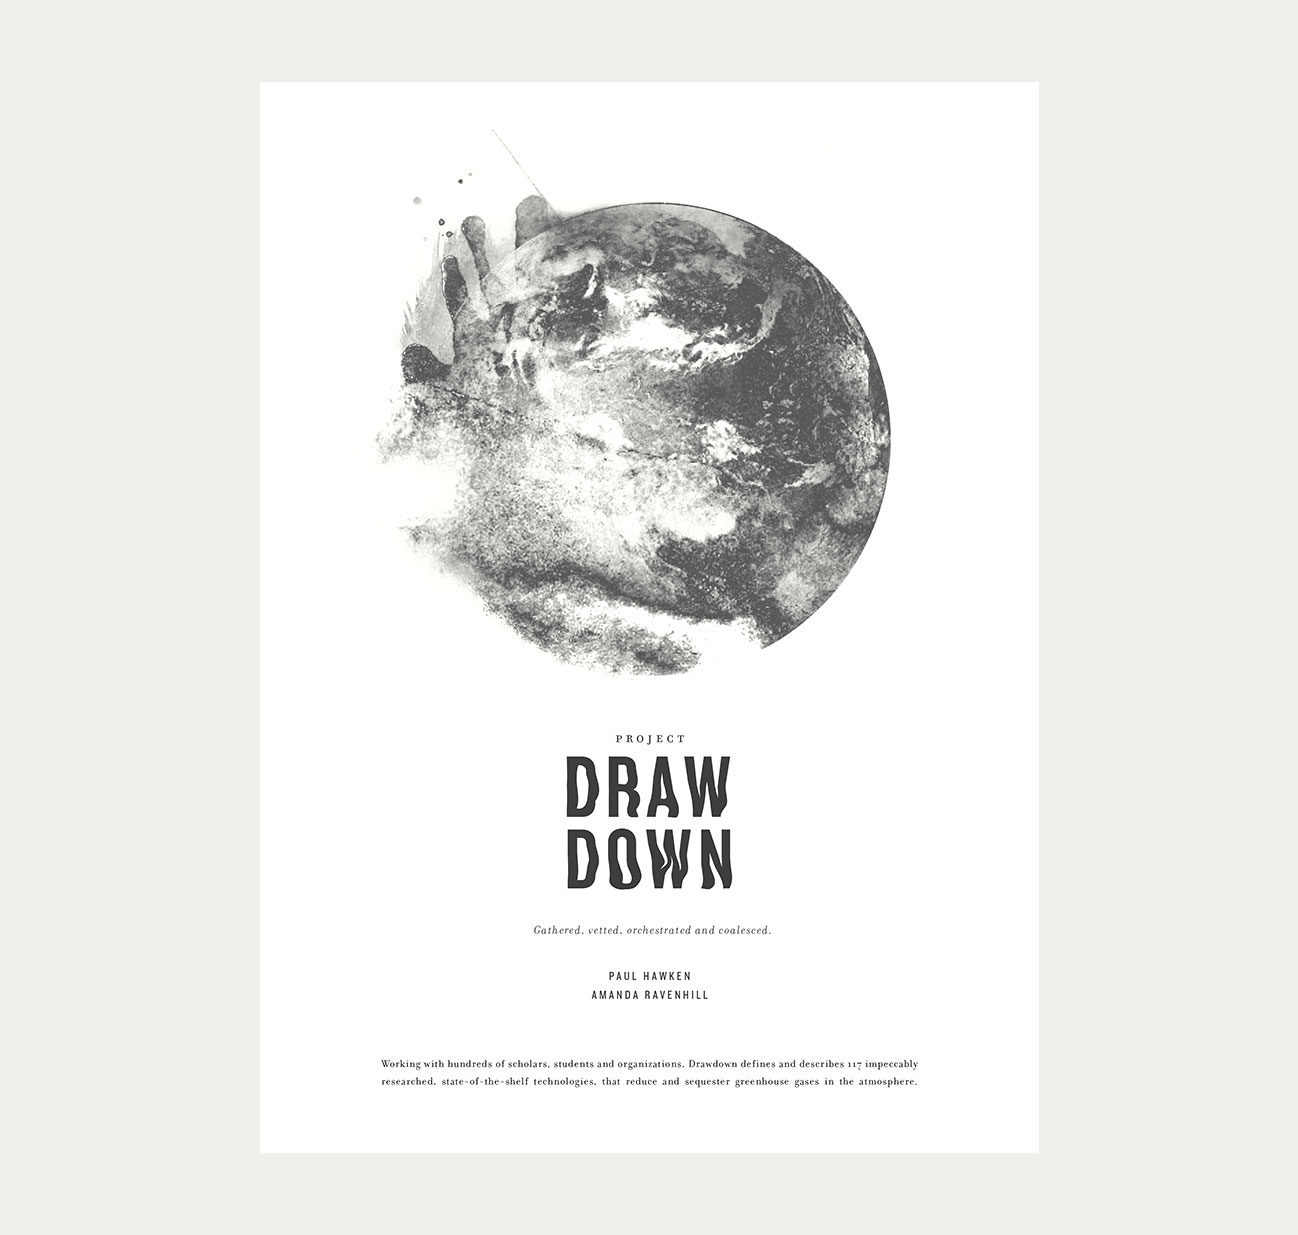 Drawdown_Book_01c